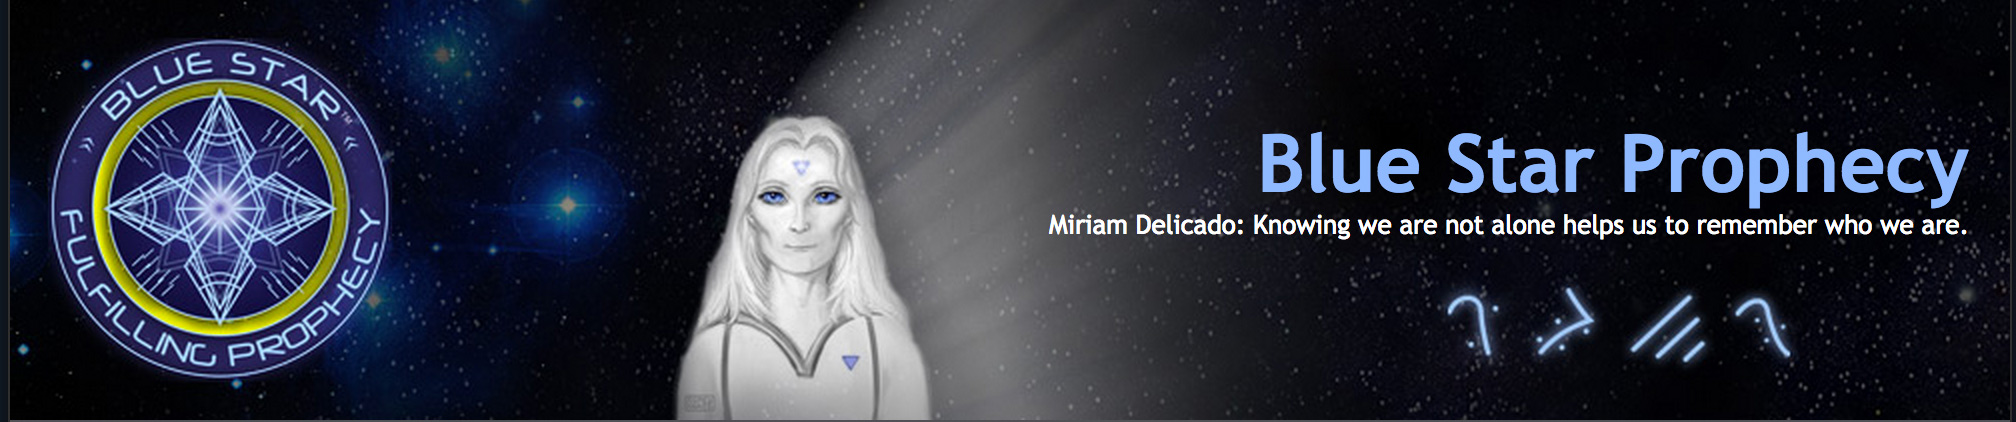 Miriam Delicado: Knowing we are not alone helps us remember who we are.